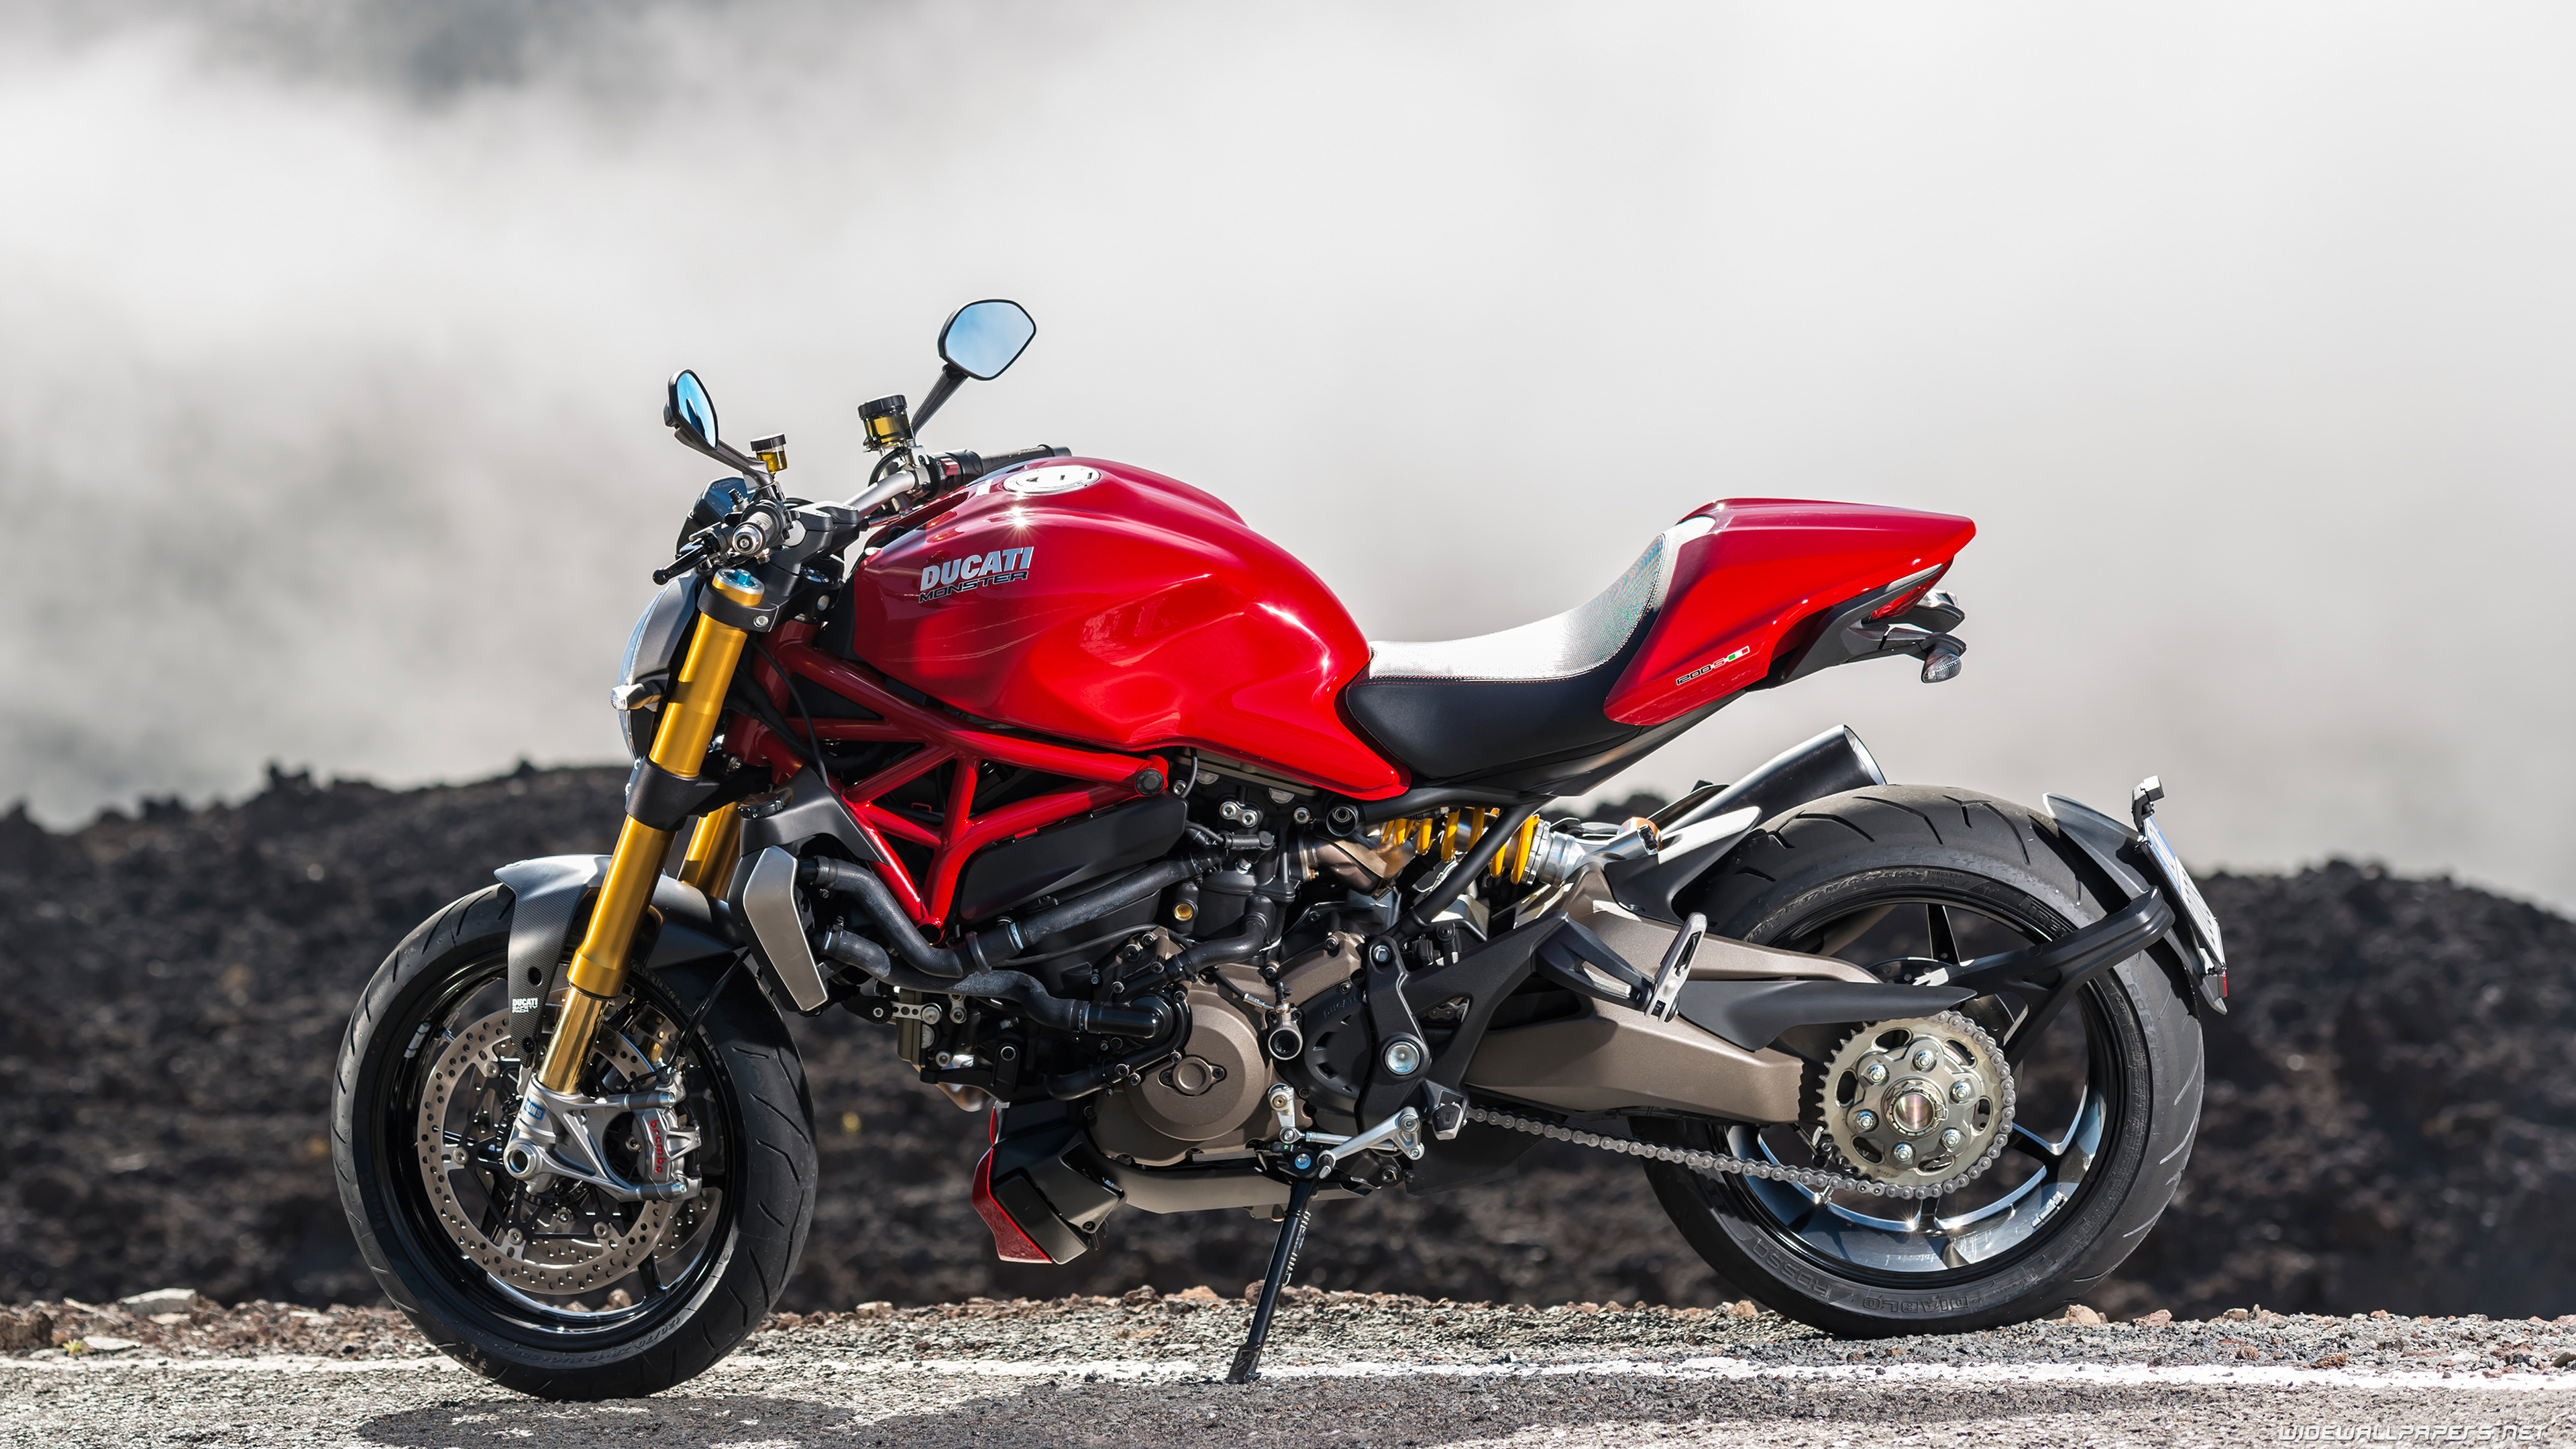 Ducati Monster 1200 S Motorcycle Wallpapers 4K Ultra HD